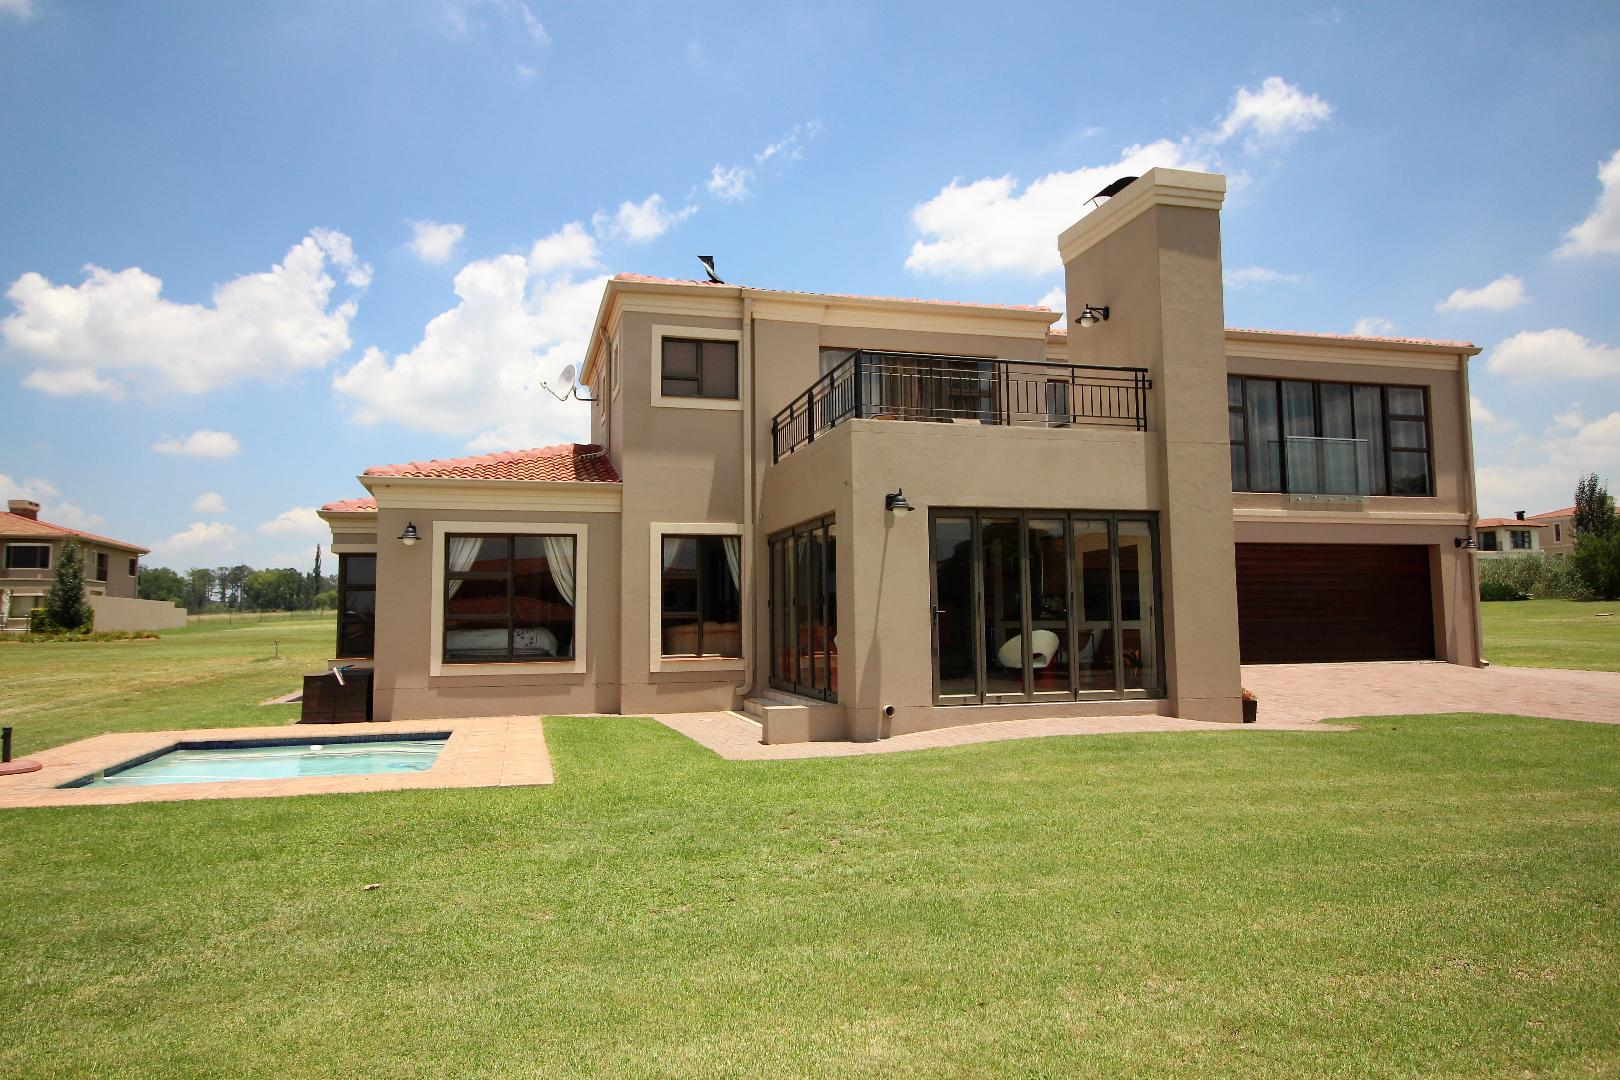 Sasolburg, Vaalpark Property  | Houses For Sale Vaalpark, Vaalpark, House 4 bedrooms property for sale Price:3,400,000